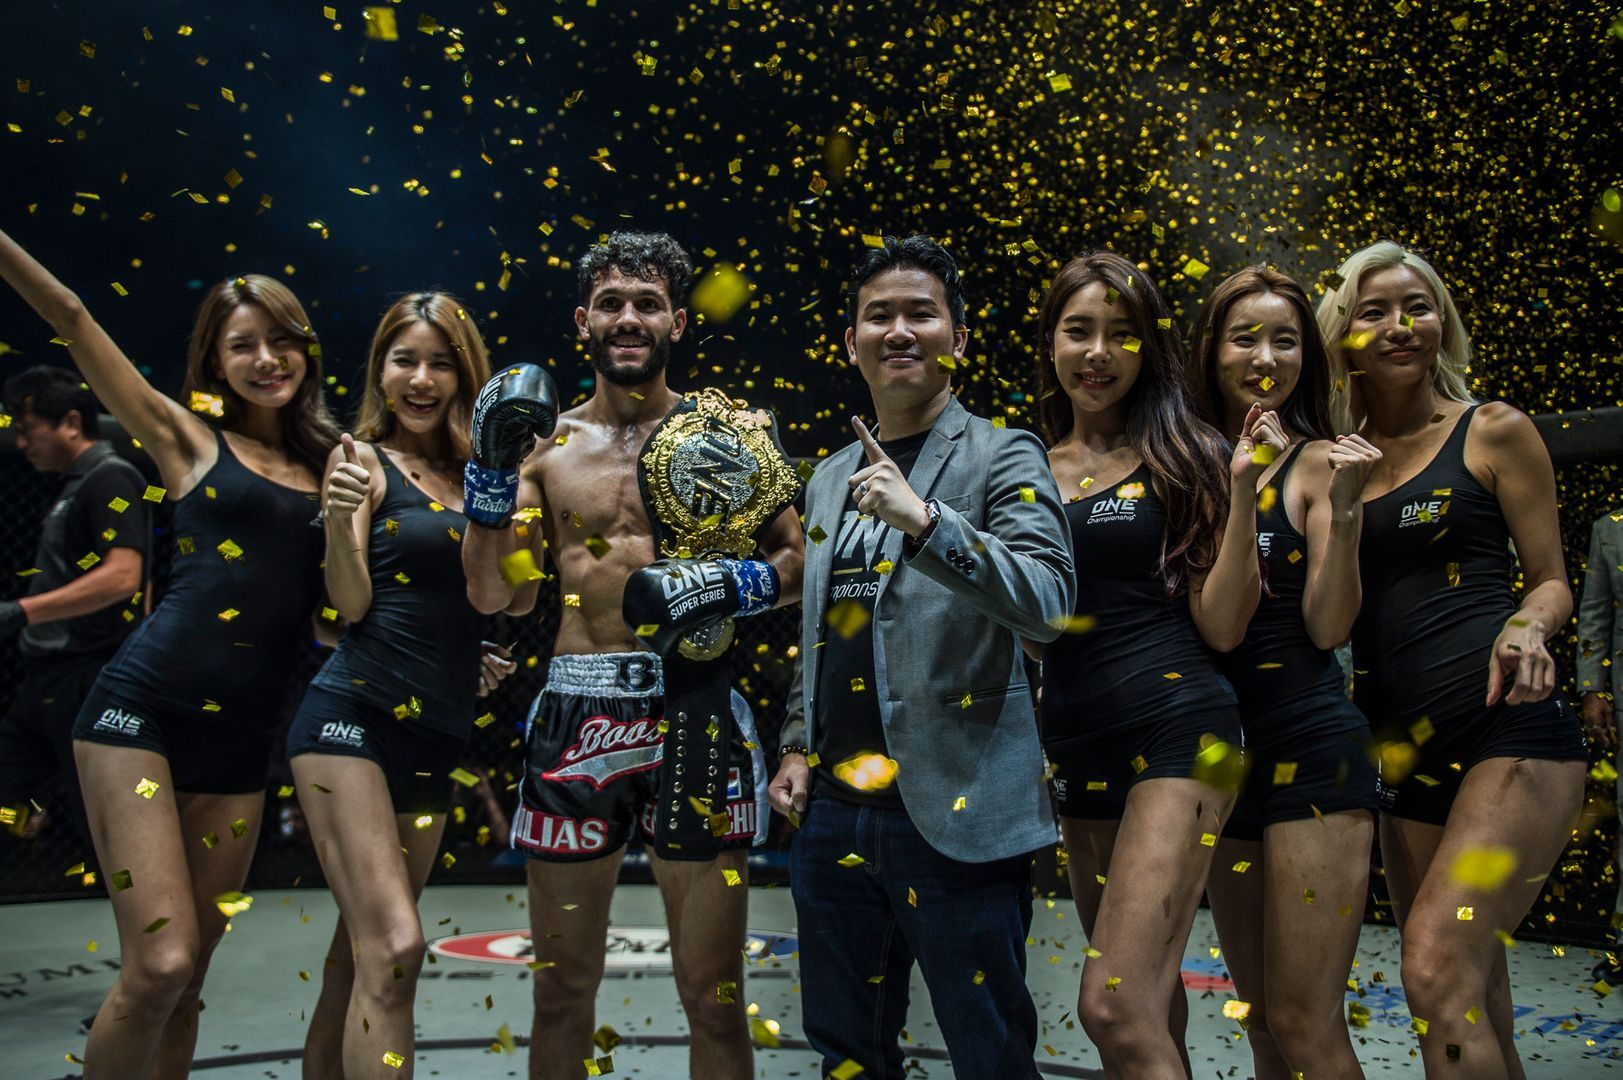 The Netherlands' Ilias Ennahachi celebrates as the new ONE Flyweight Kickboxing World Champion